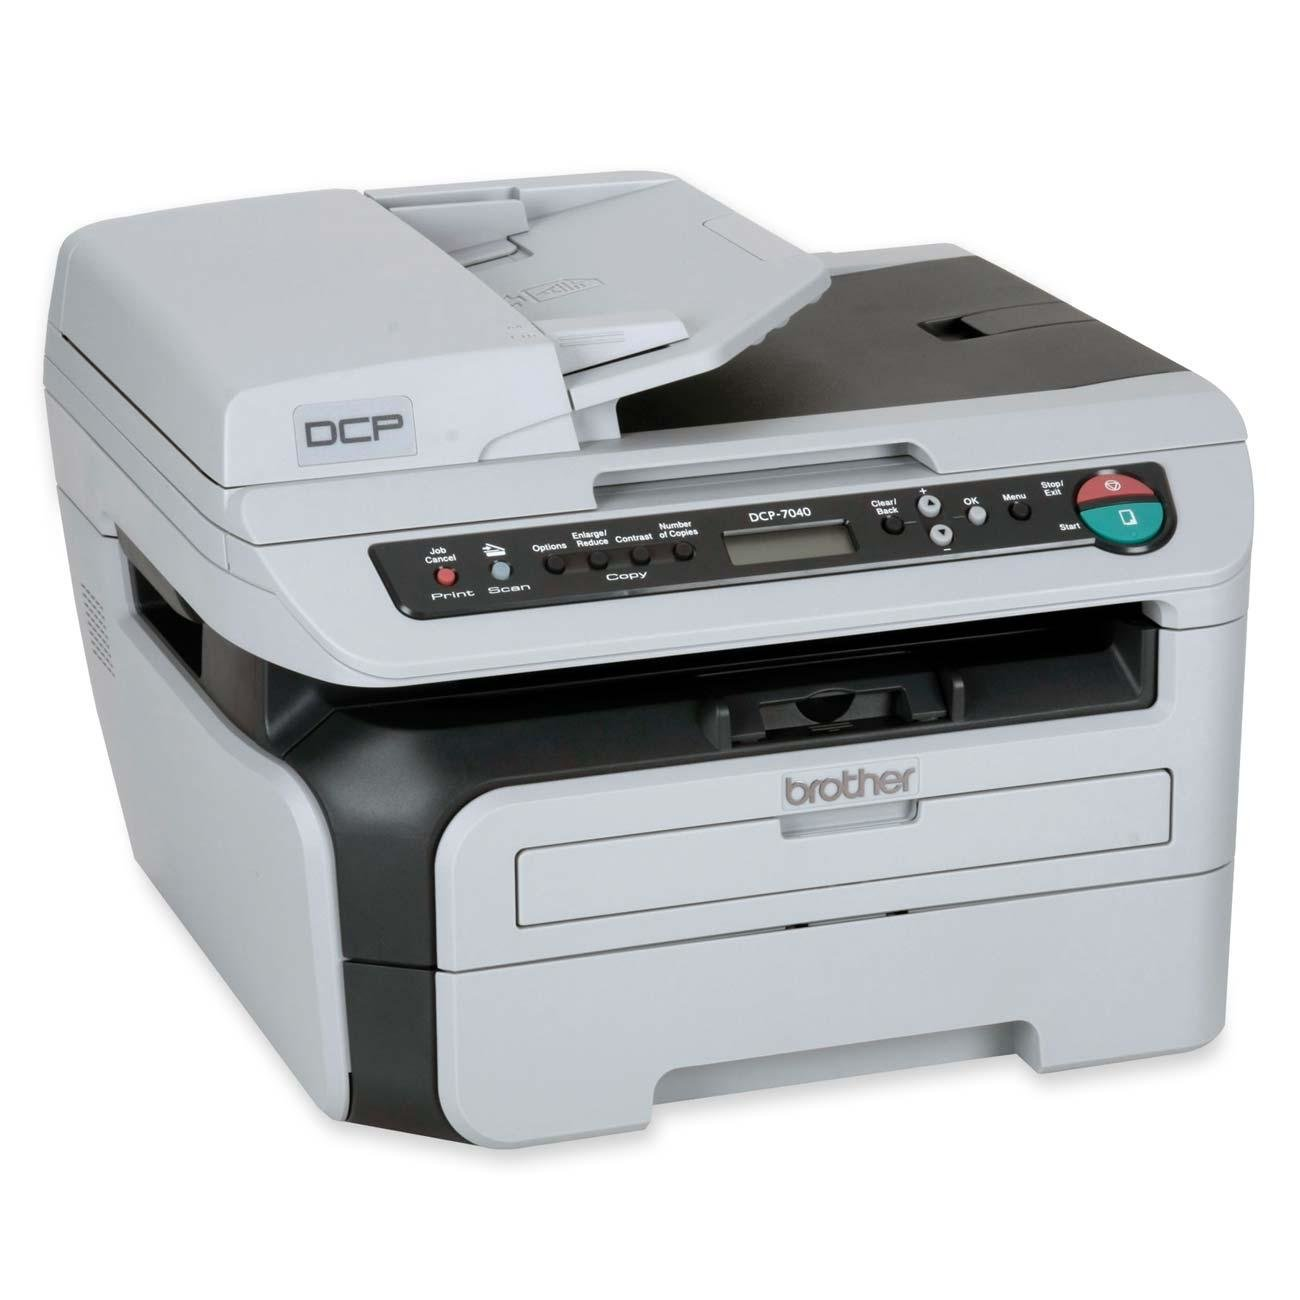 BROTHER DCP-7040 PRINTER SCANNER WINDOWS 8.1 DRIVER DOWNLOAD